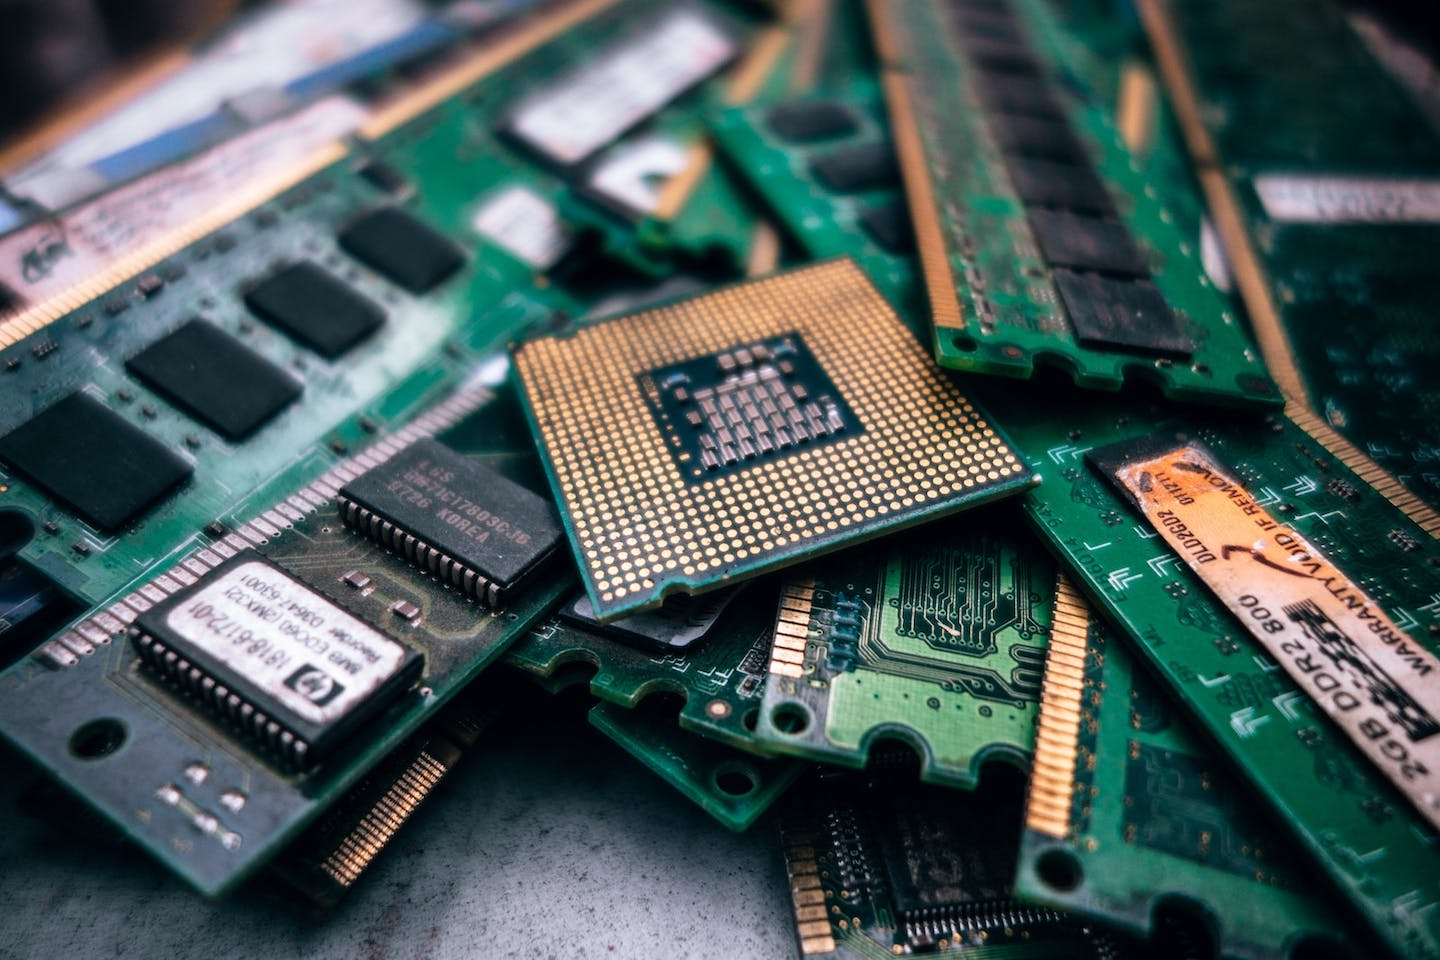 Blue Planet acquires British company Smart Creative in a bid to tackle Asia's growing e-waste problem